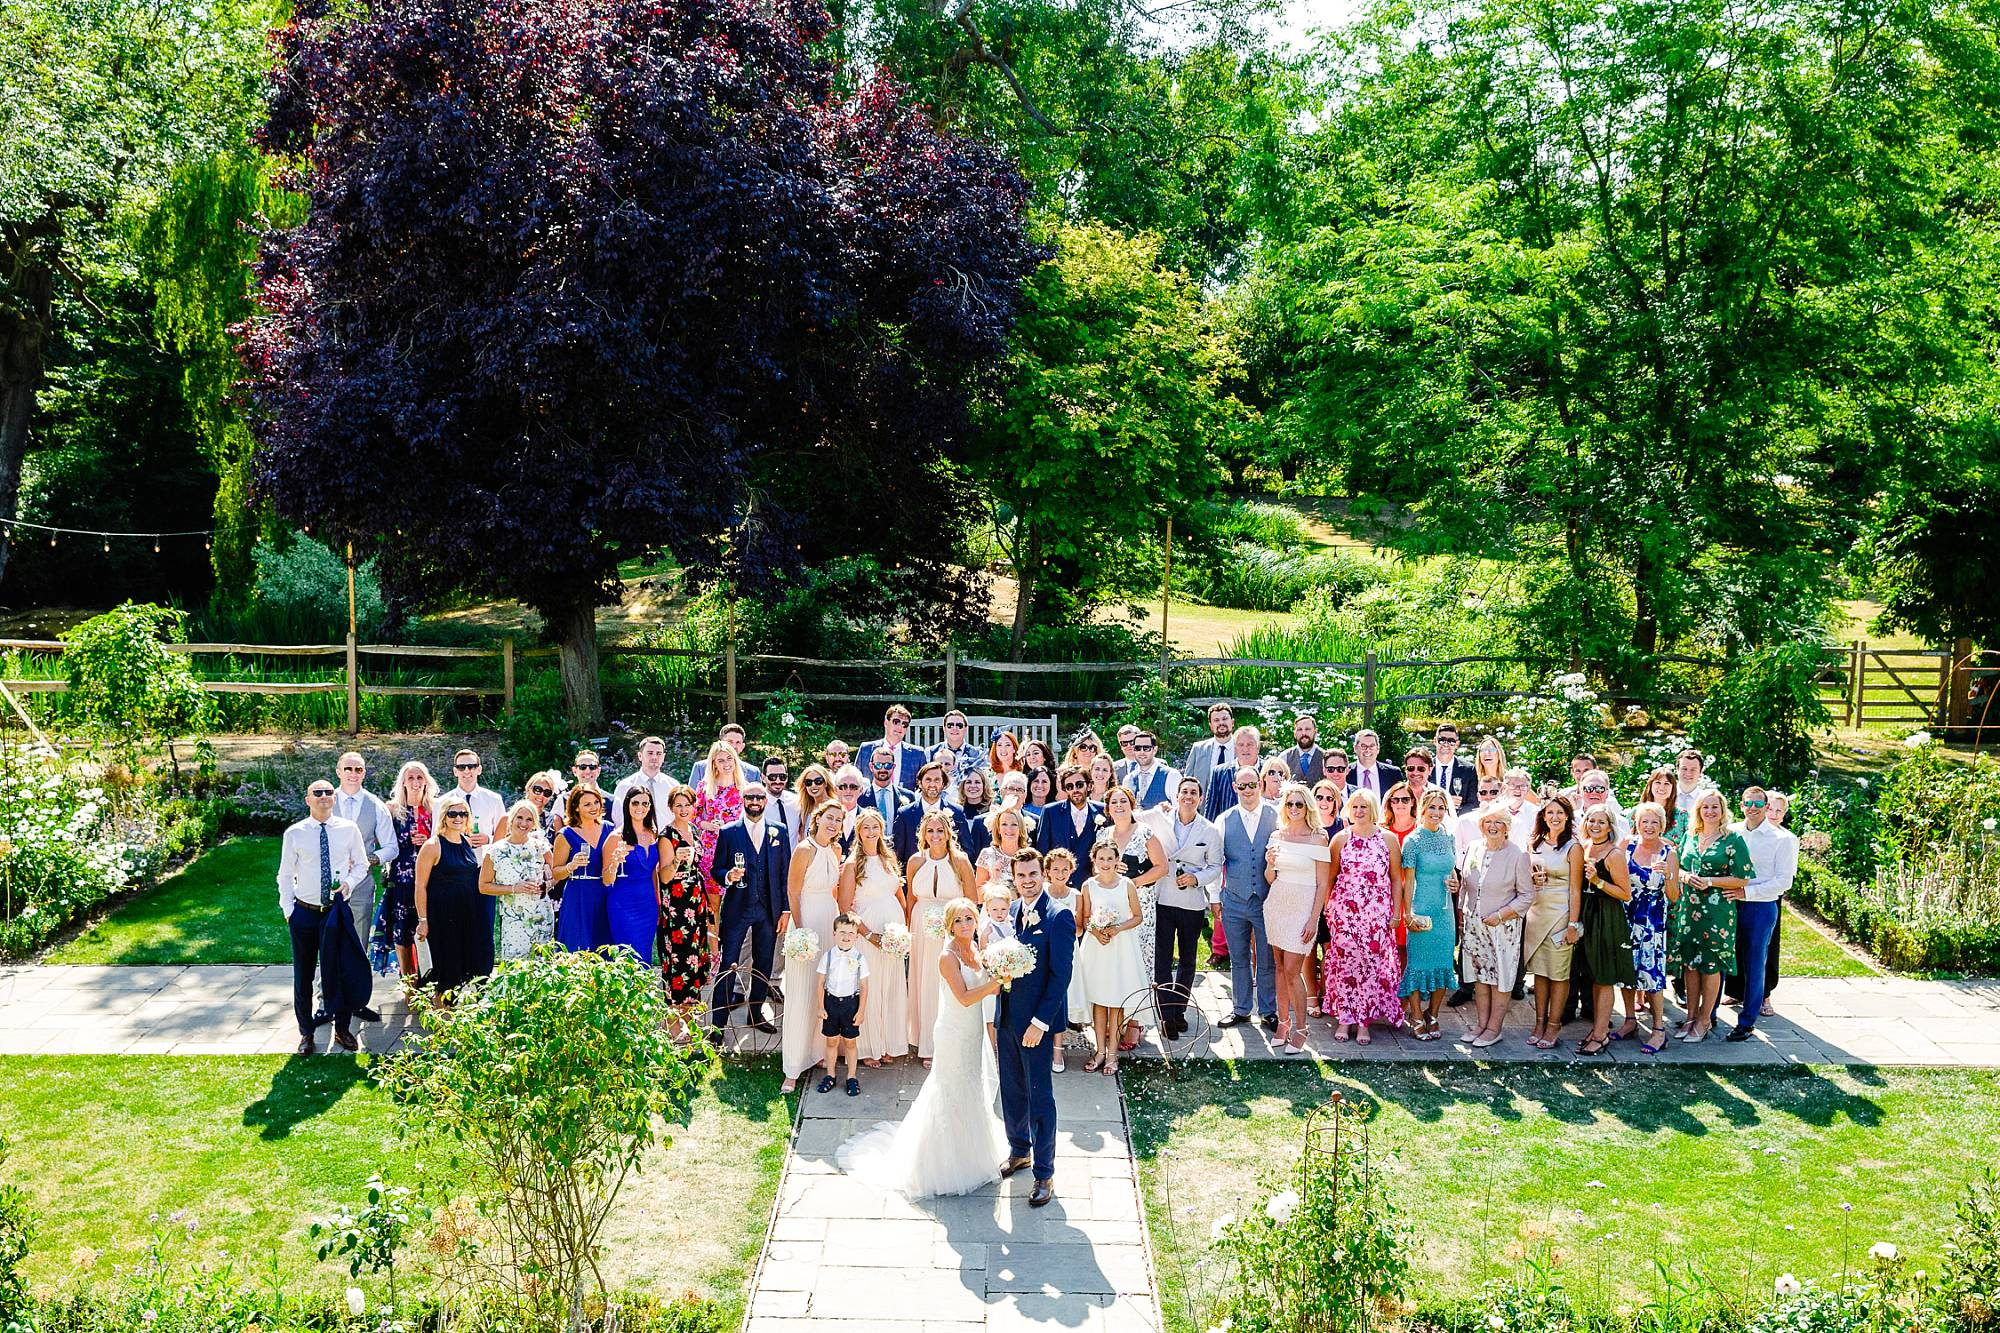 Houchins Essex Wedding Photographer_0050.jpg